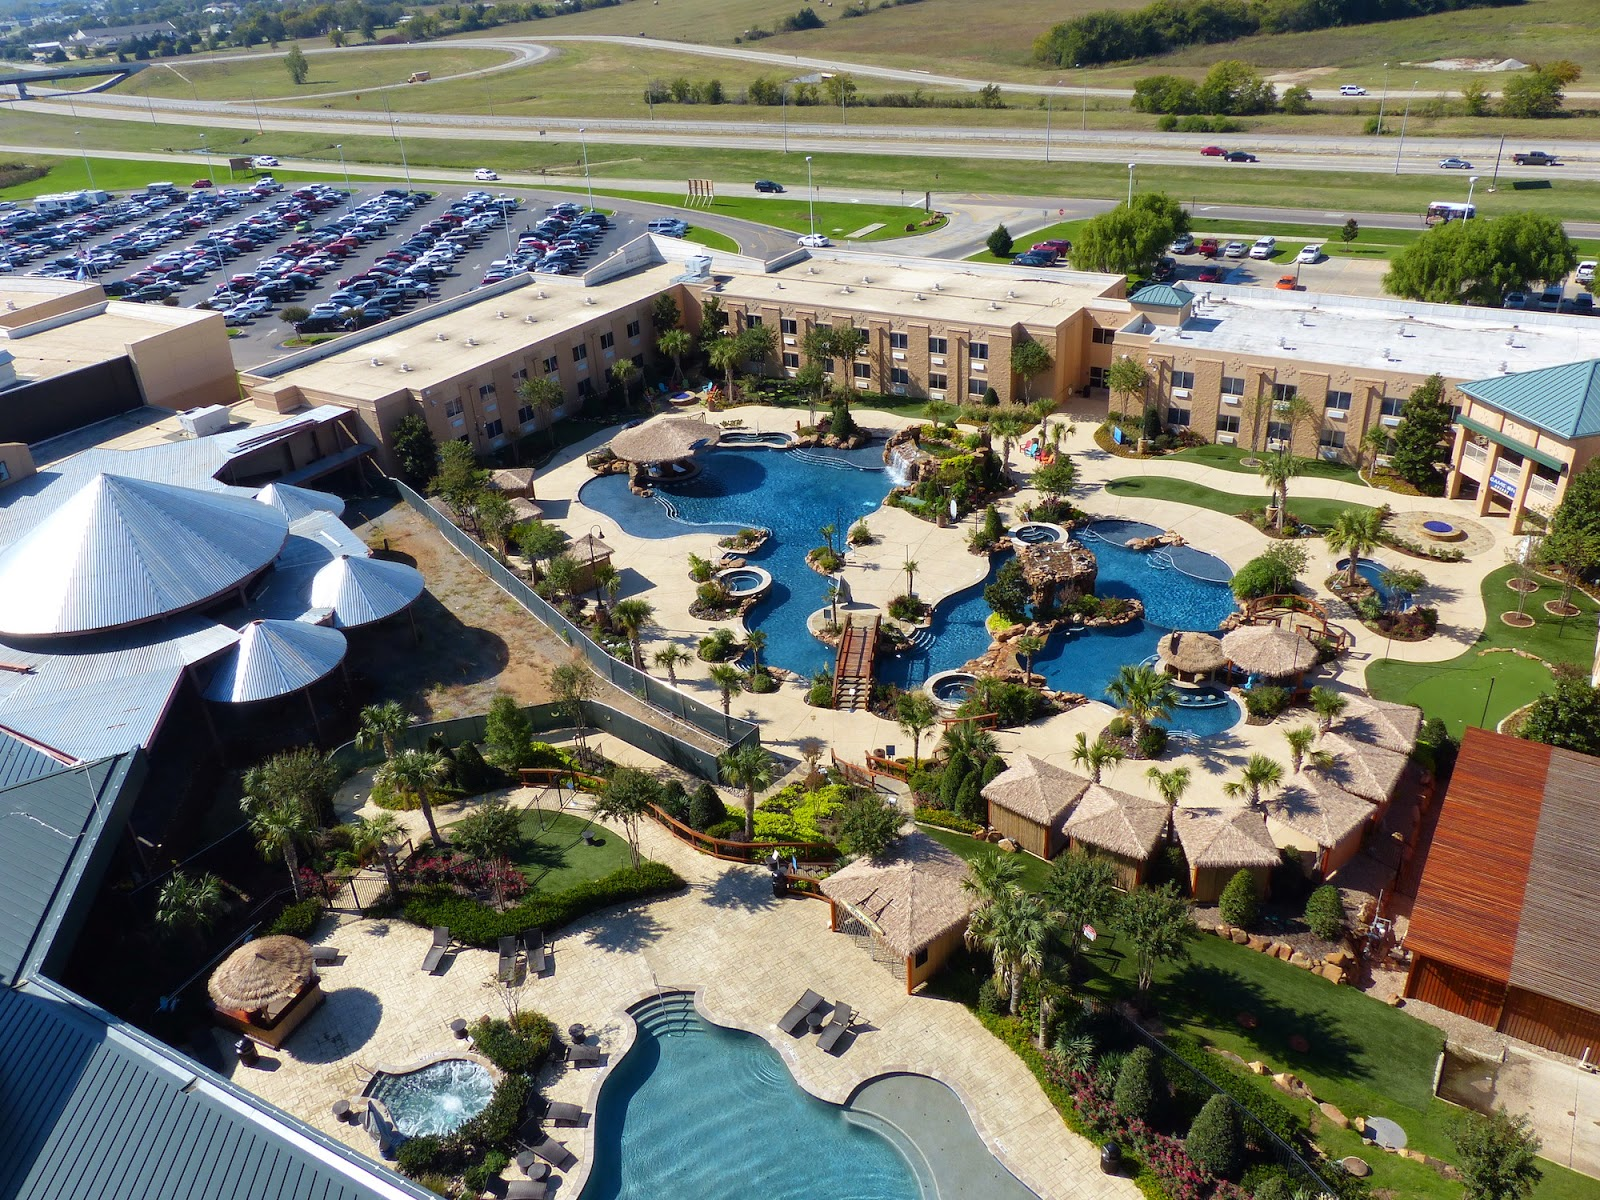 Choctaw casino and resort in durant oklahoma